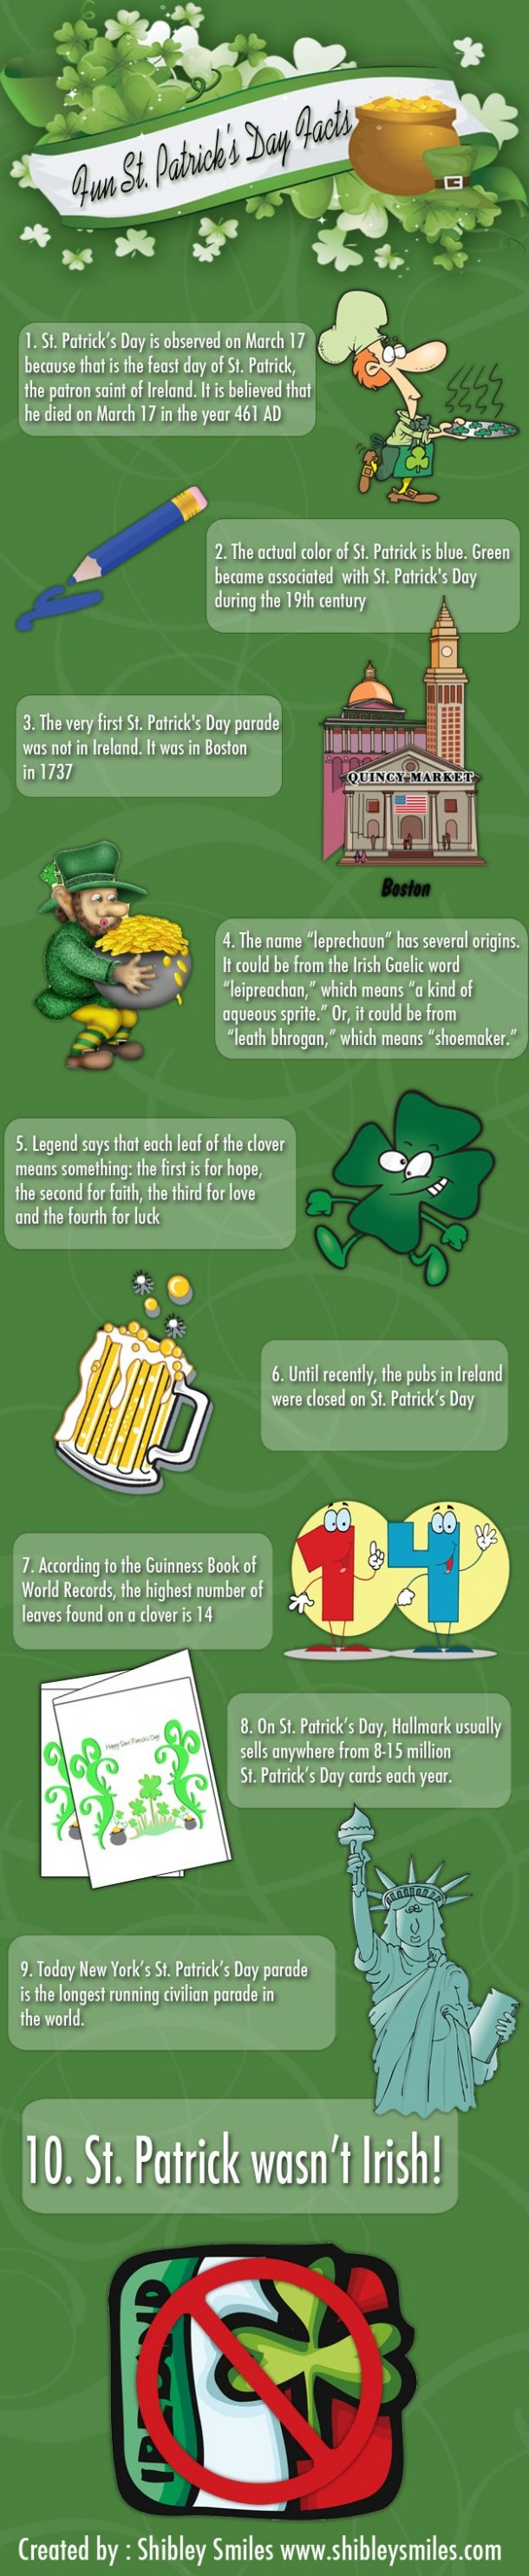 Uncategorized St Patrick Day Facts For Kids best 25 st patricks day facts ideas on pinterest patrick fun infographic love trivia about day